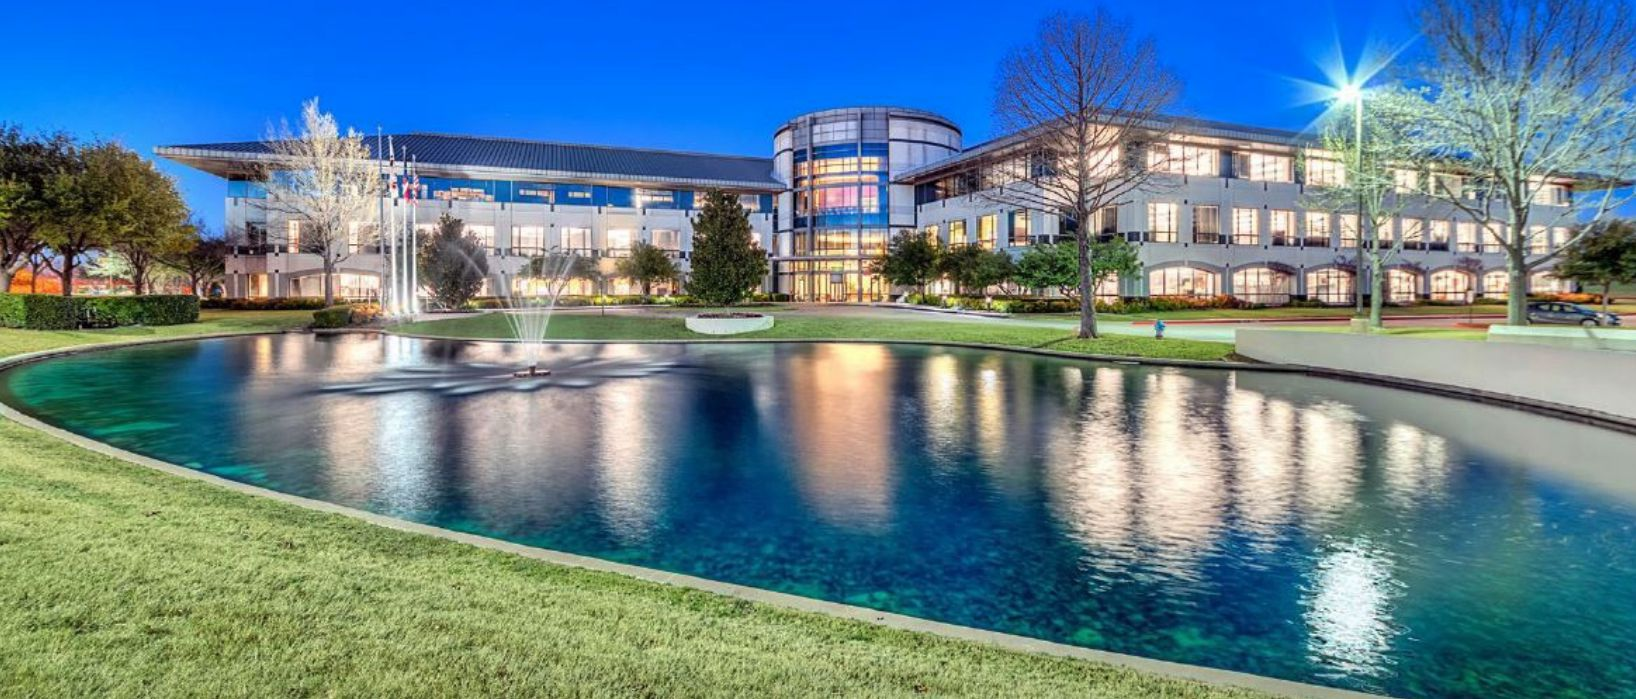 Dr Pepper's headquarters campus in West Plano is for sale.